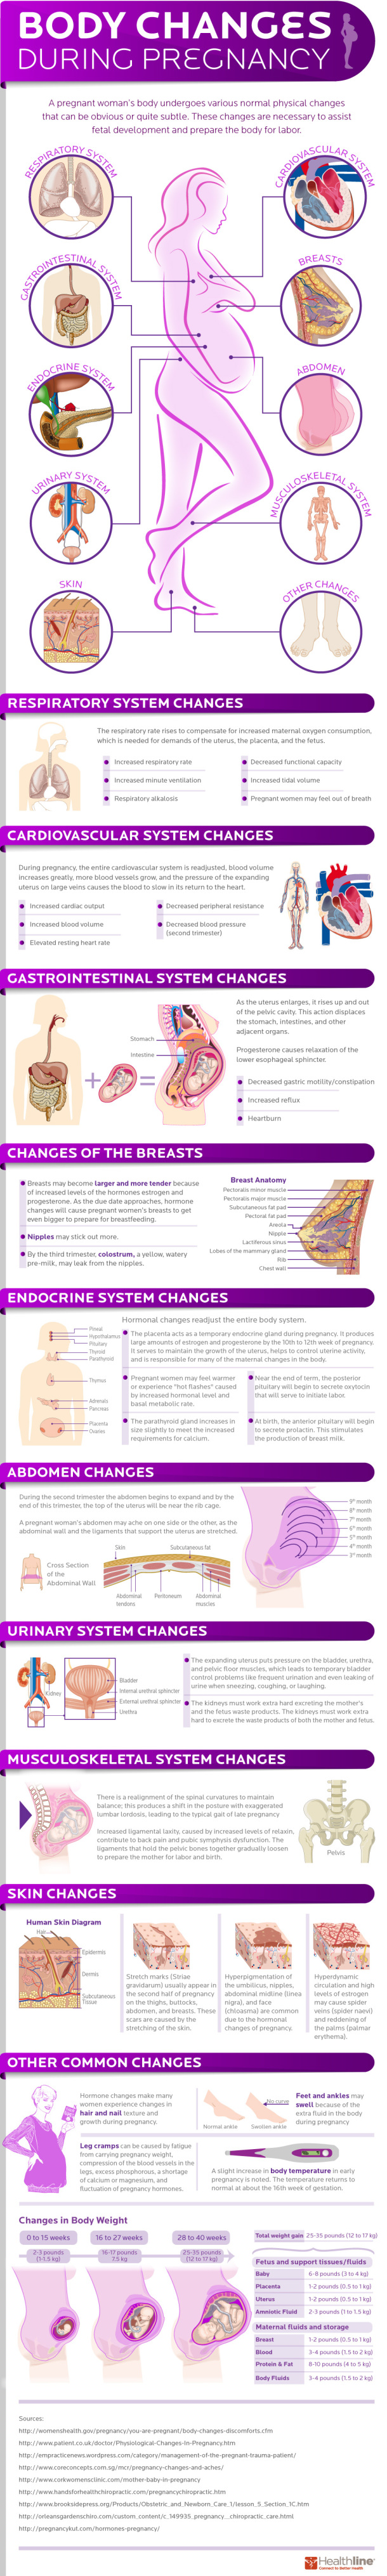 Body Changes During Pregnancy [INFOGRAPHIC] | New Visions Healthcare Blog